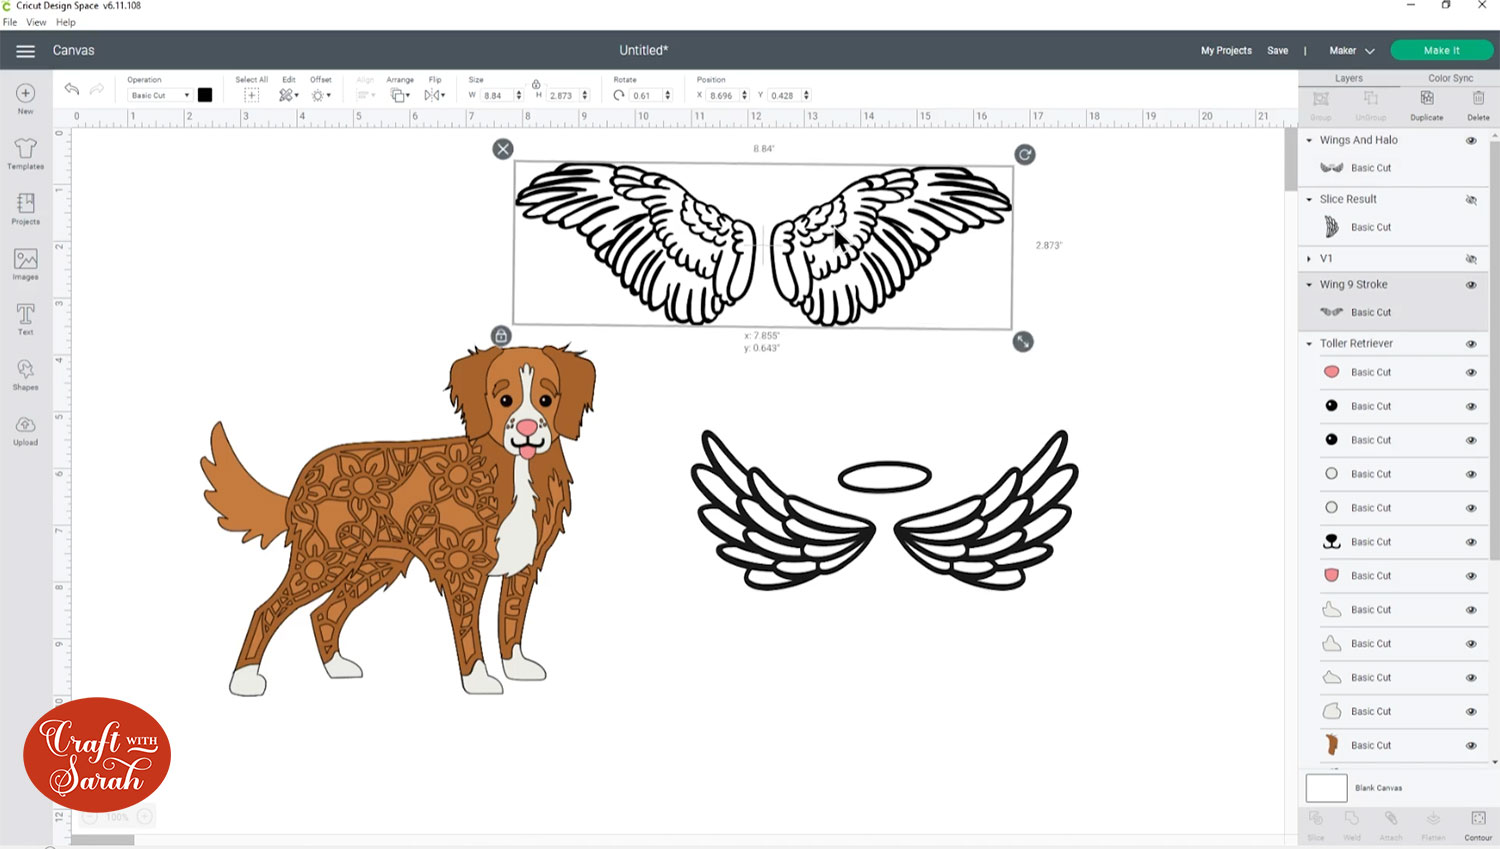 Angel wings from Cricut Access